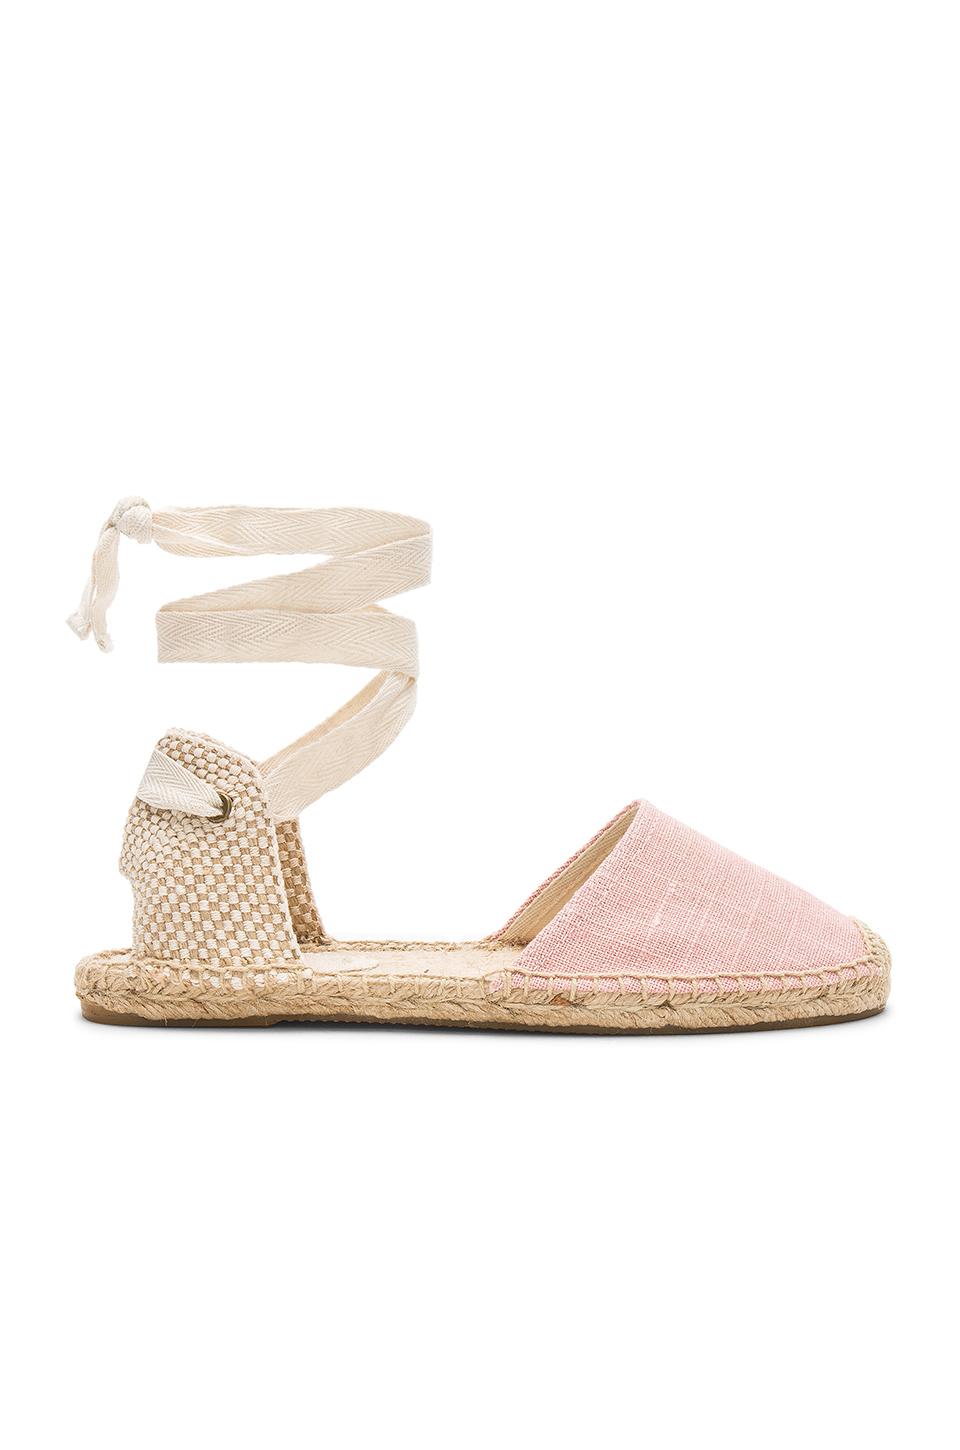 Soludos Classic Sandal in Dusty Rose